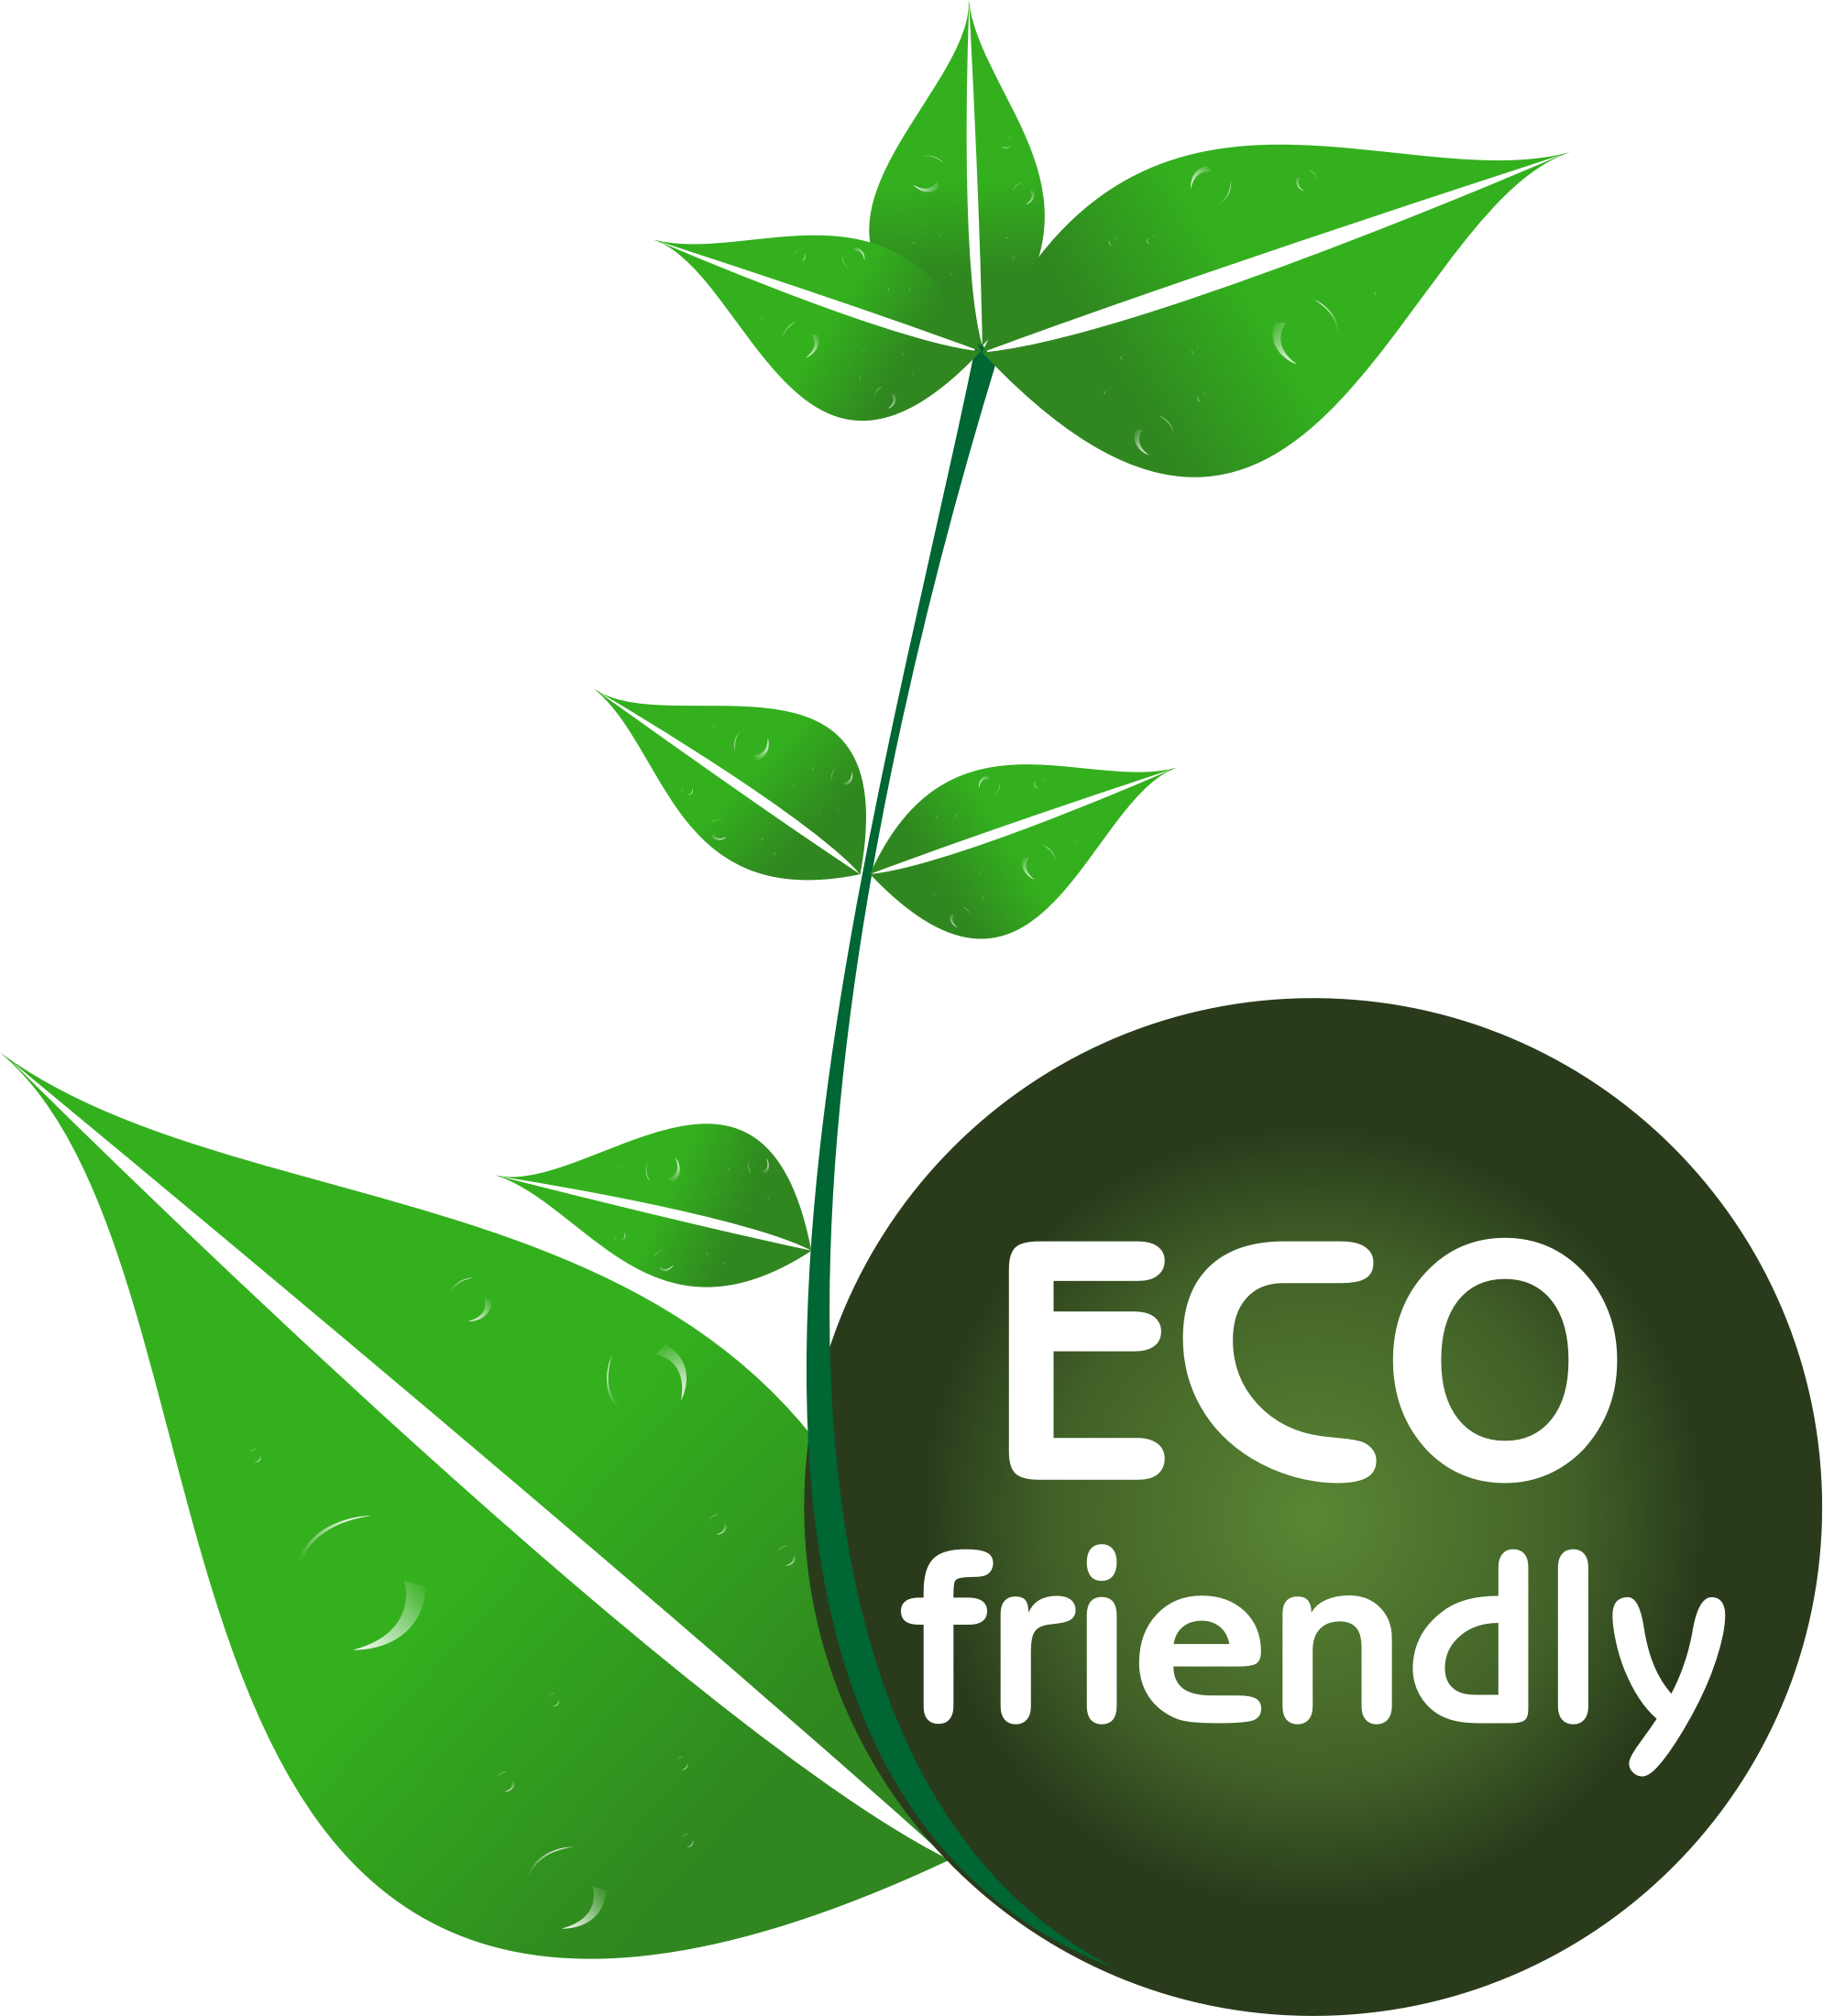 eco friendly Designing eco-friendly products to reduce environmental impact across the  product lifecycle, kao has created its own design for environment (dfe)  guidelines.